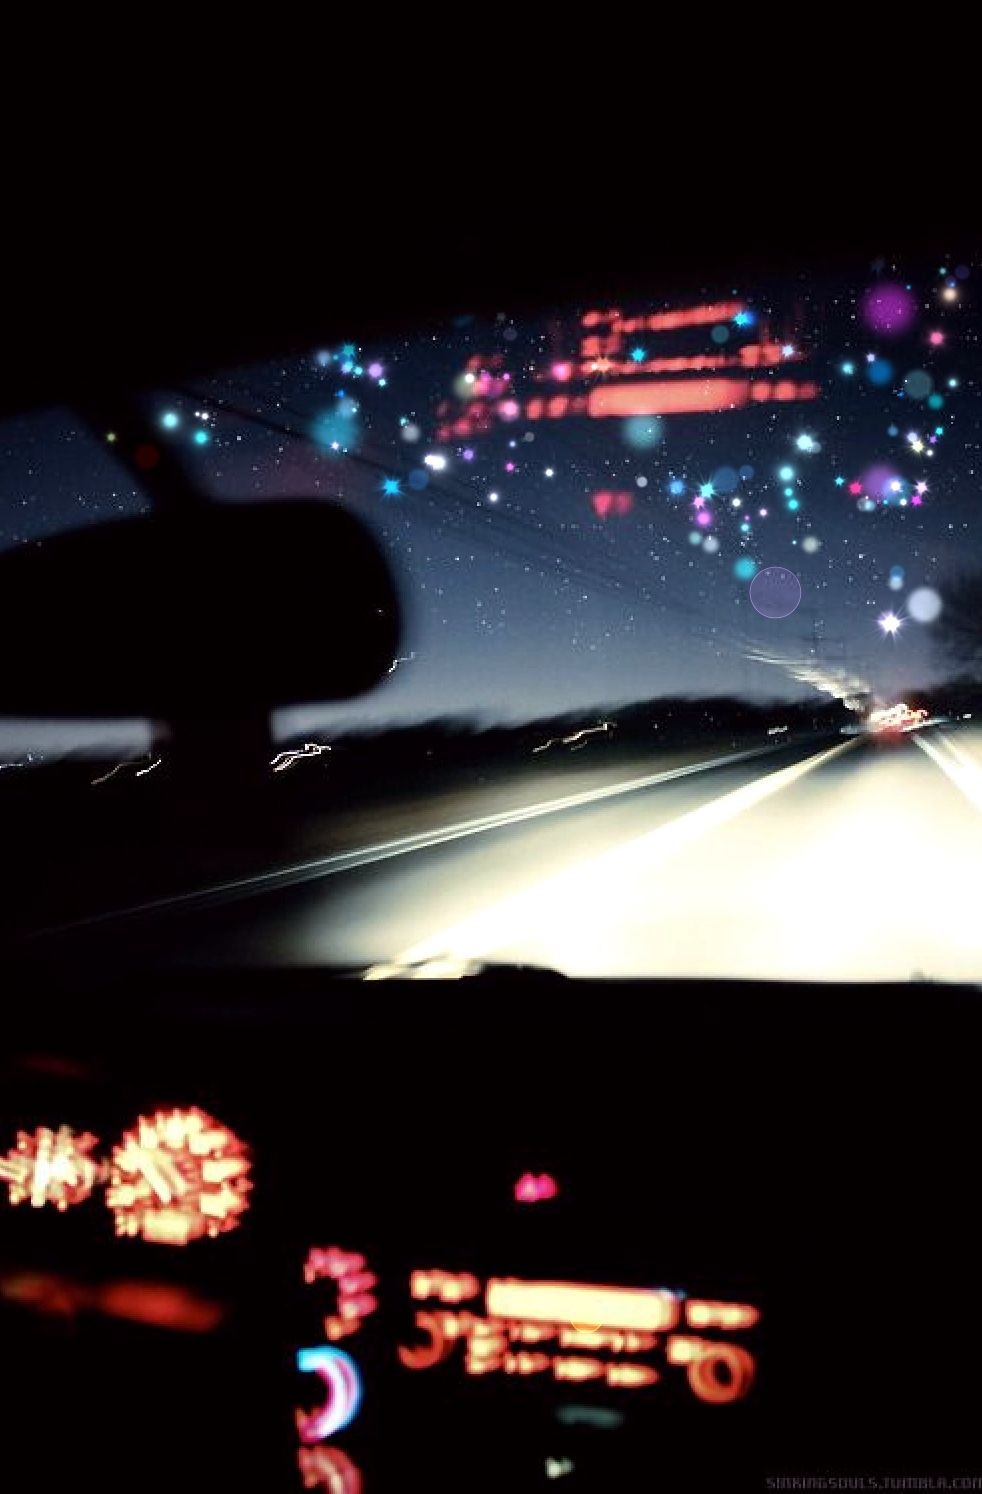 Pin By Ericka Albaugh On Beauty Night Driving Night Aesthetic Night Vibes